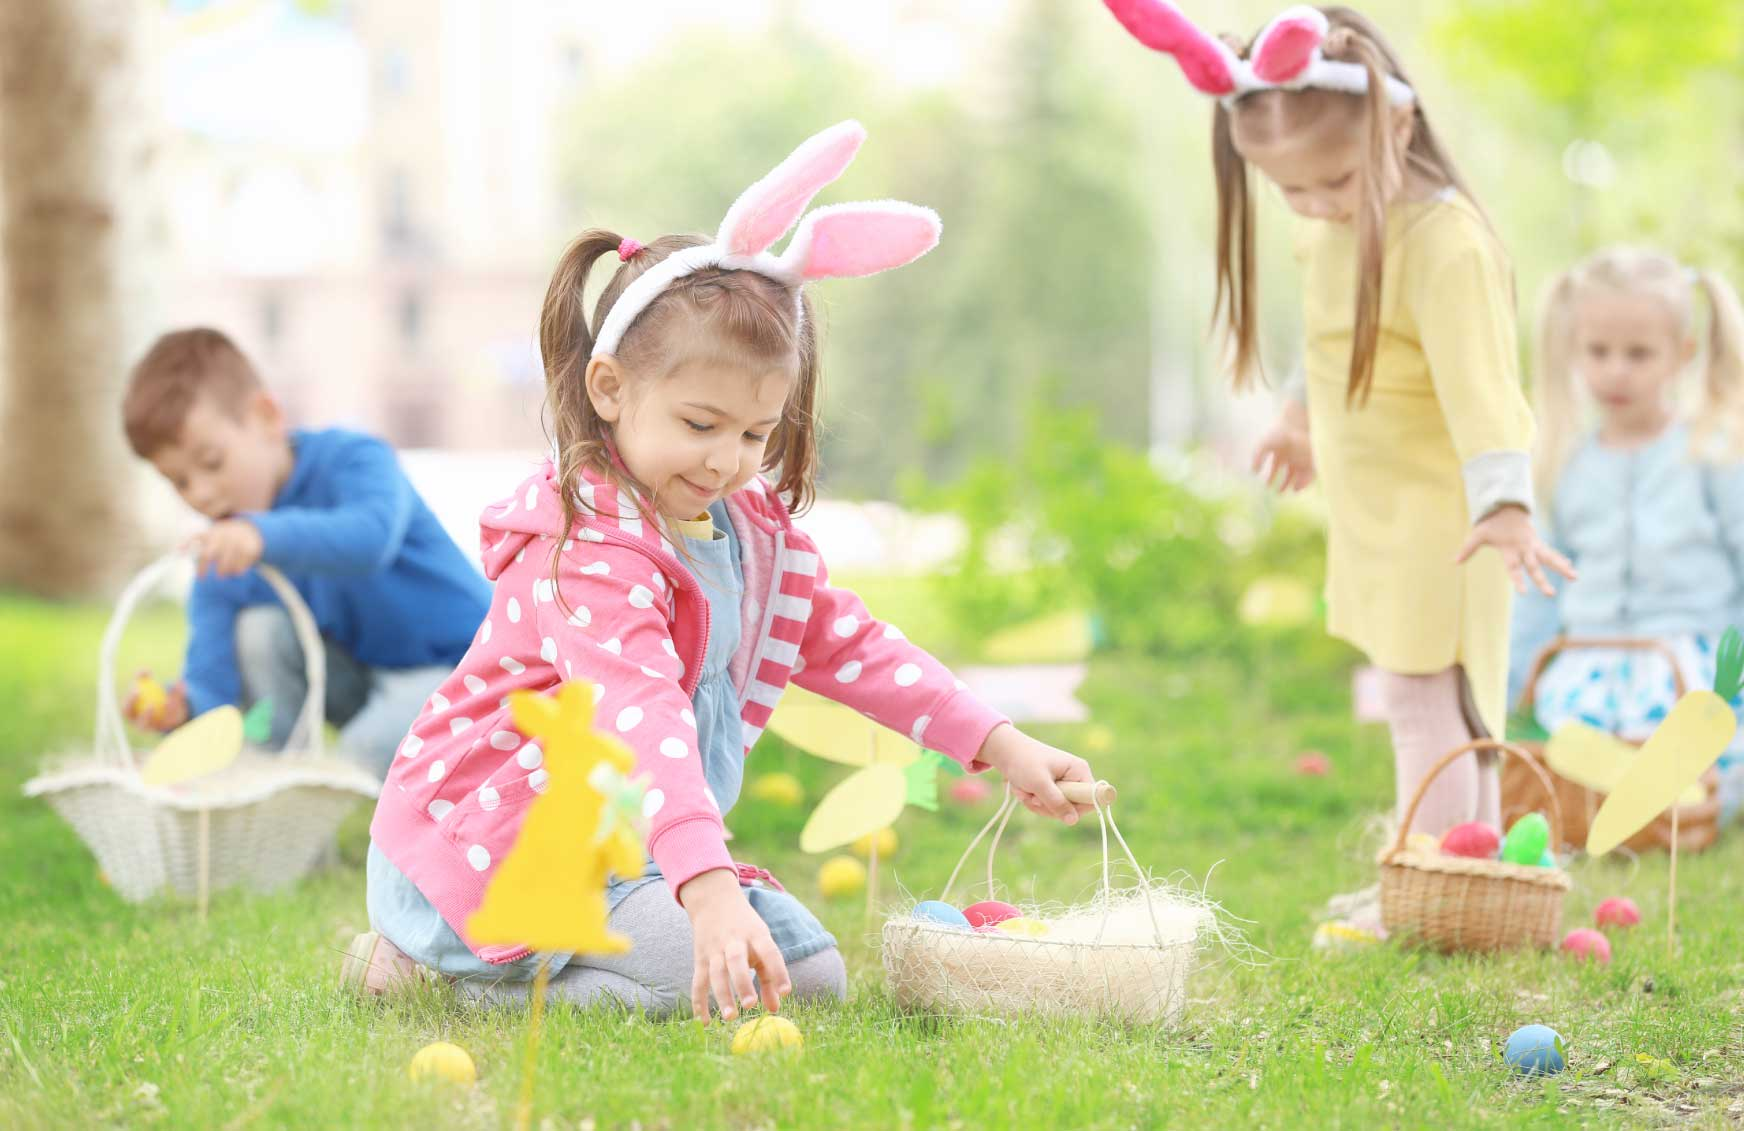 Get Crafty with Your Own Easter Egg Hunt